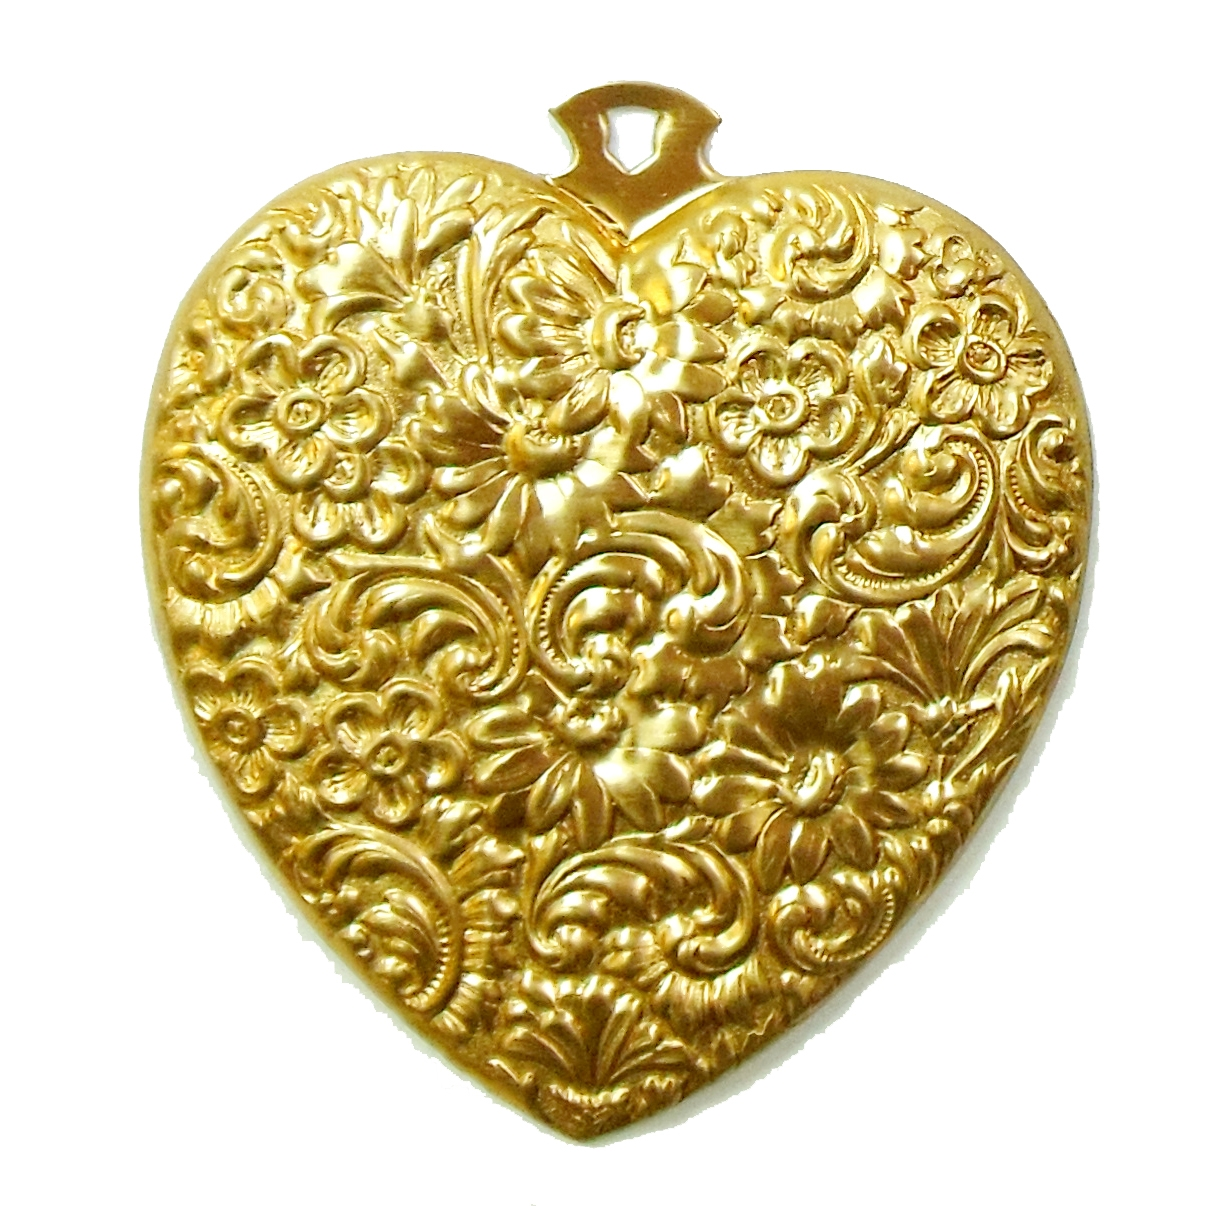 heart pendant, jewelry making, raw brass, 62x55mm